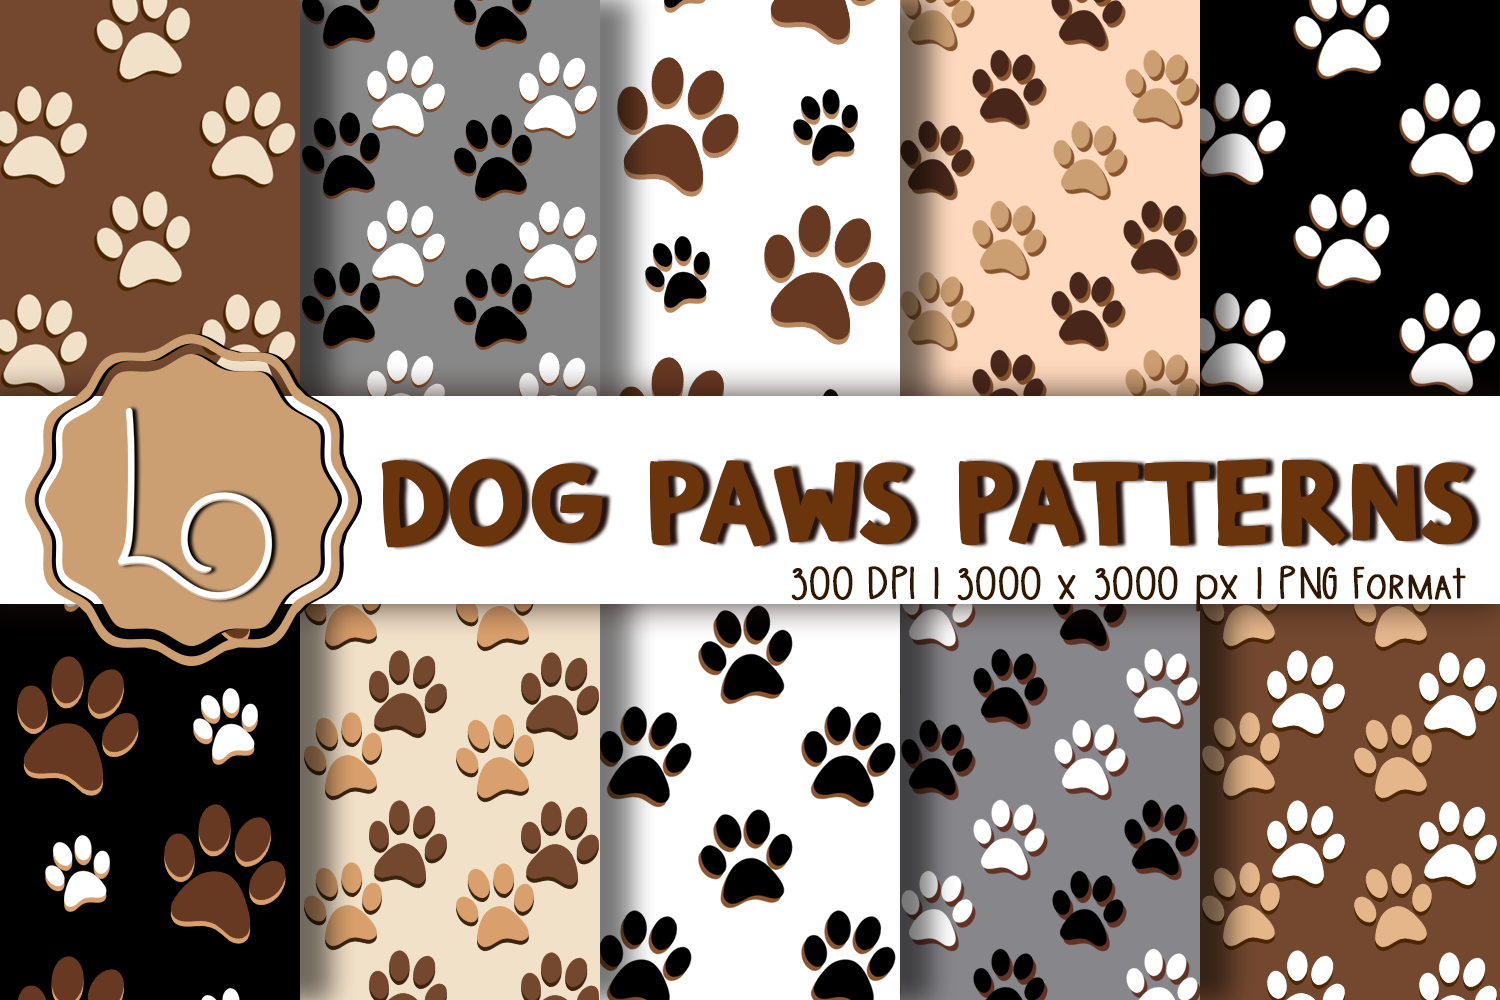 Download Free Dog Paws Patterns Graphic By La Oliveira Creative Fabrica for Cricut Explore, Silhouette and other cutting machines.